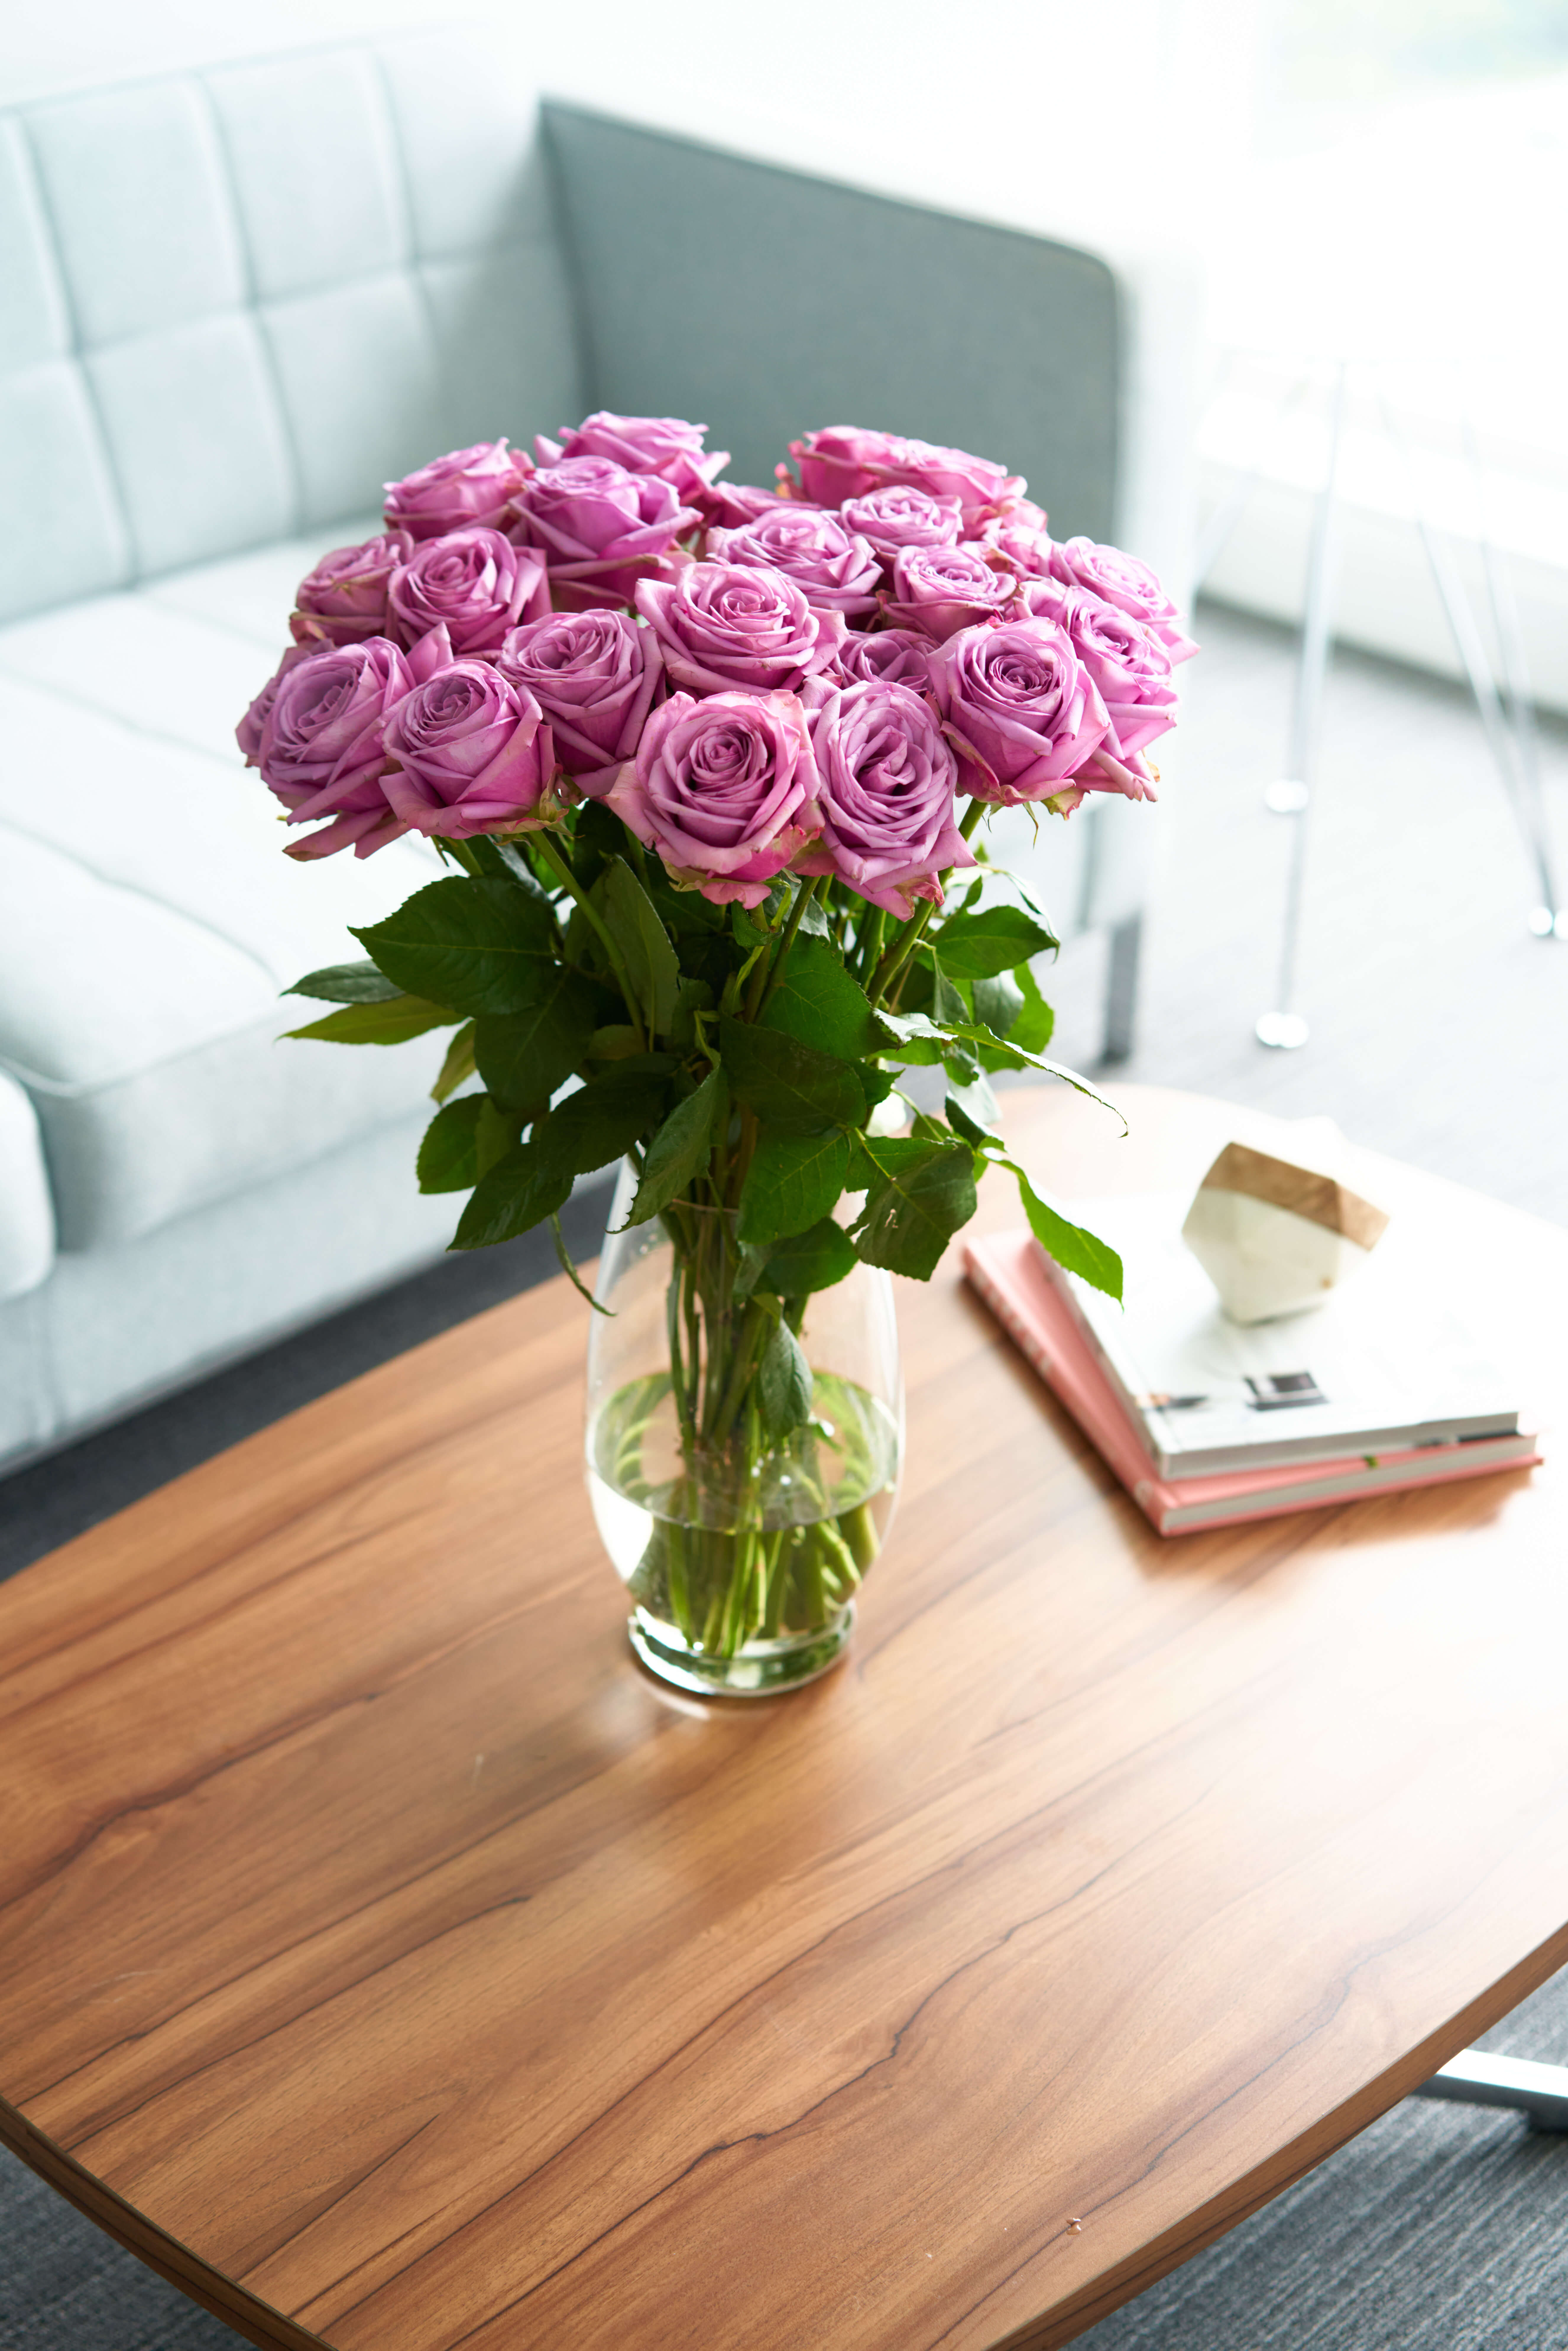 Purple Roses Flower Bouquet 48 Purple Roses Long Stem 4 Dozen Roses Beautiful Purple Roses Delivery Luxury Fresh Roses Birthday Anniversary Roses Any Occasion Walmart Com Walmart Com